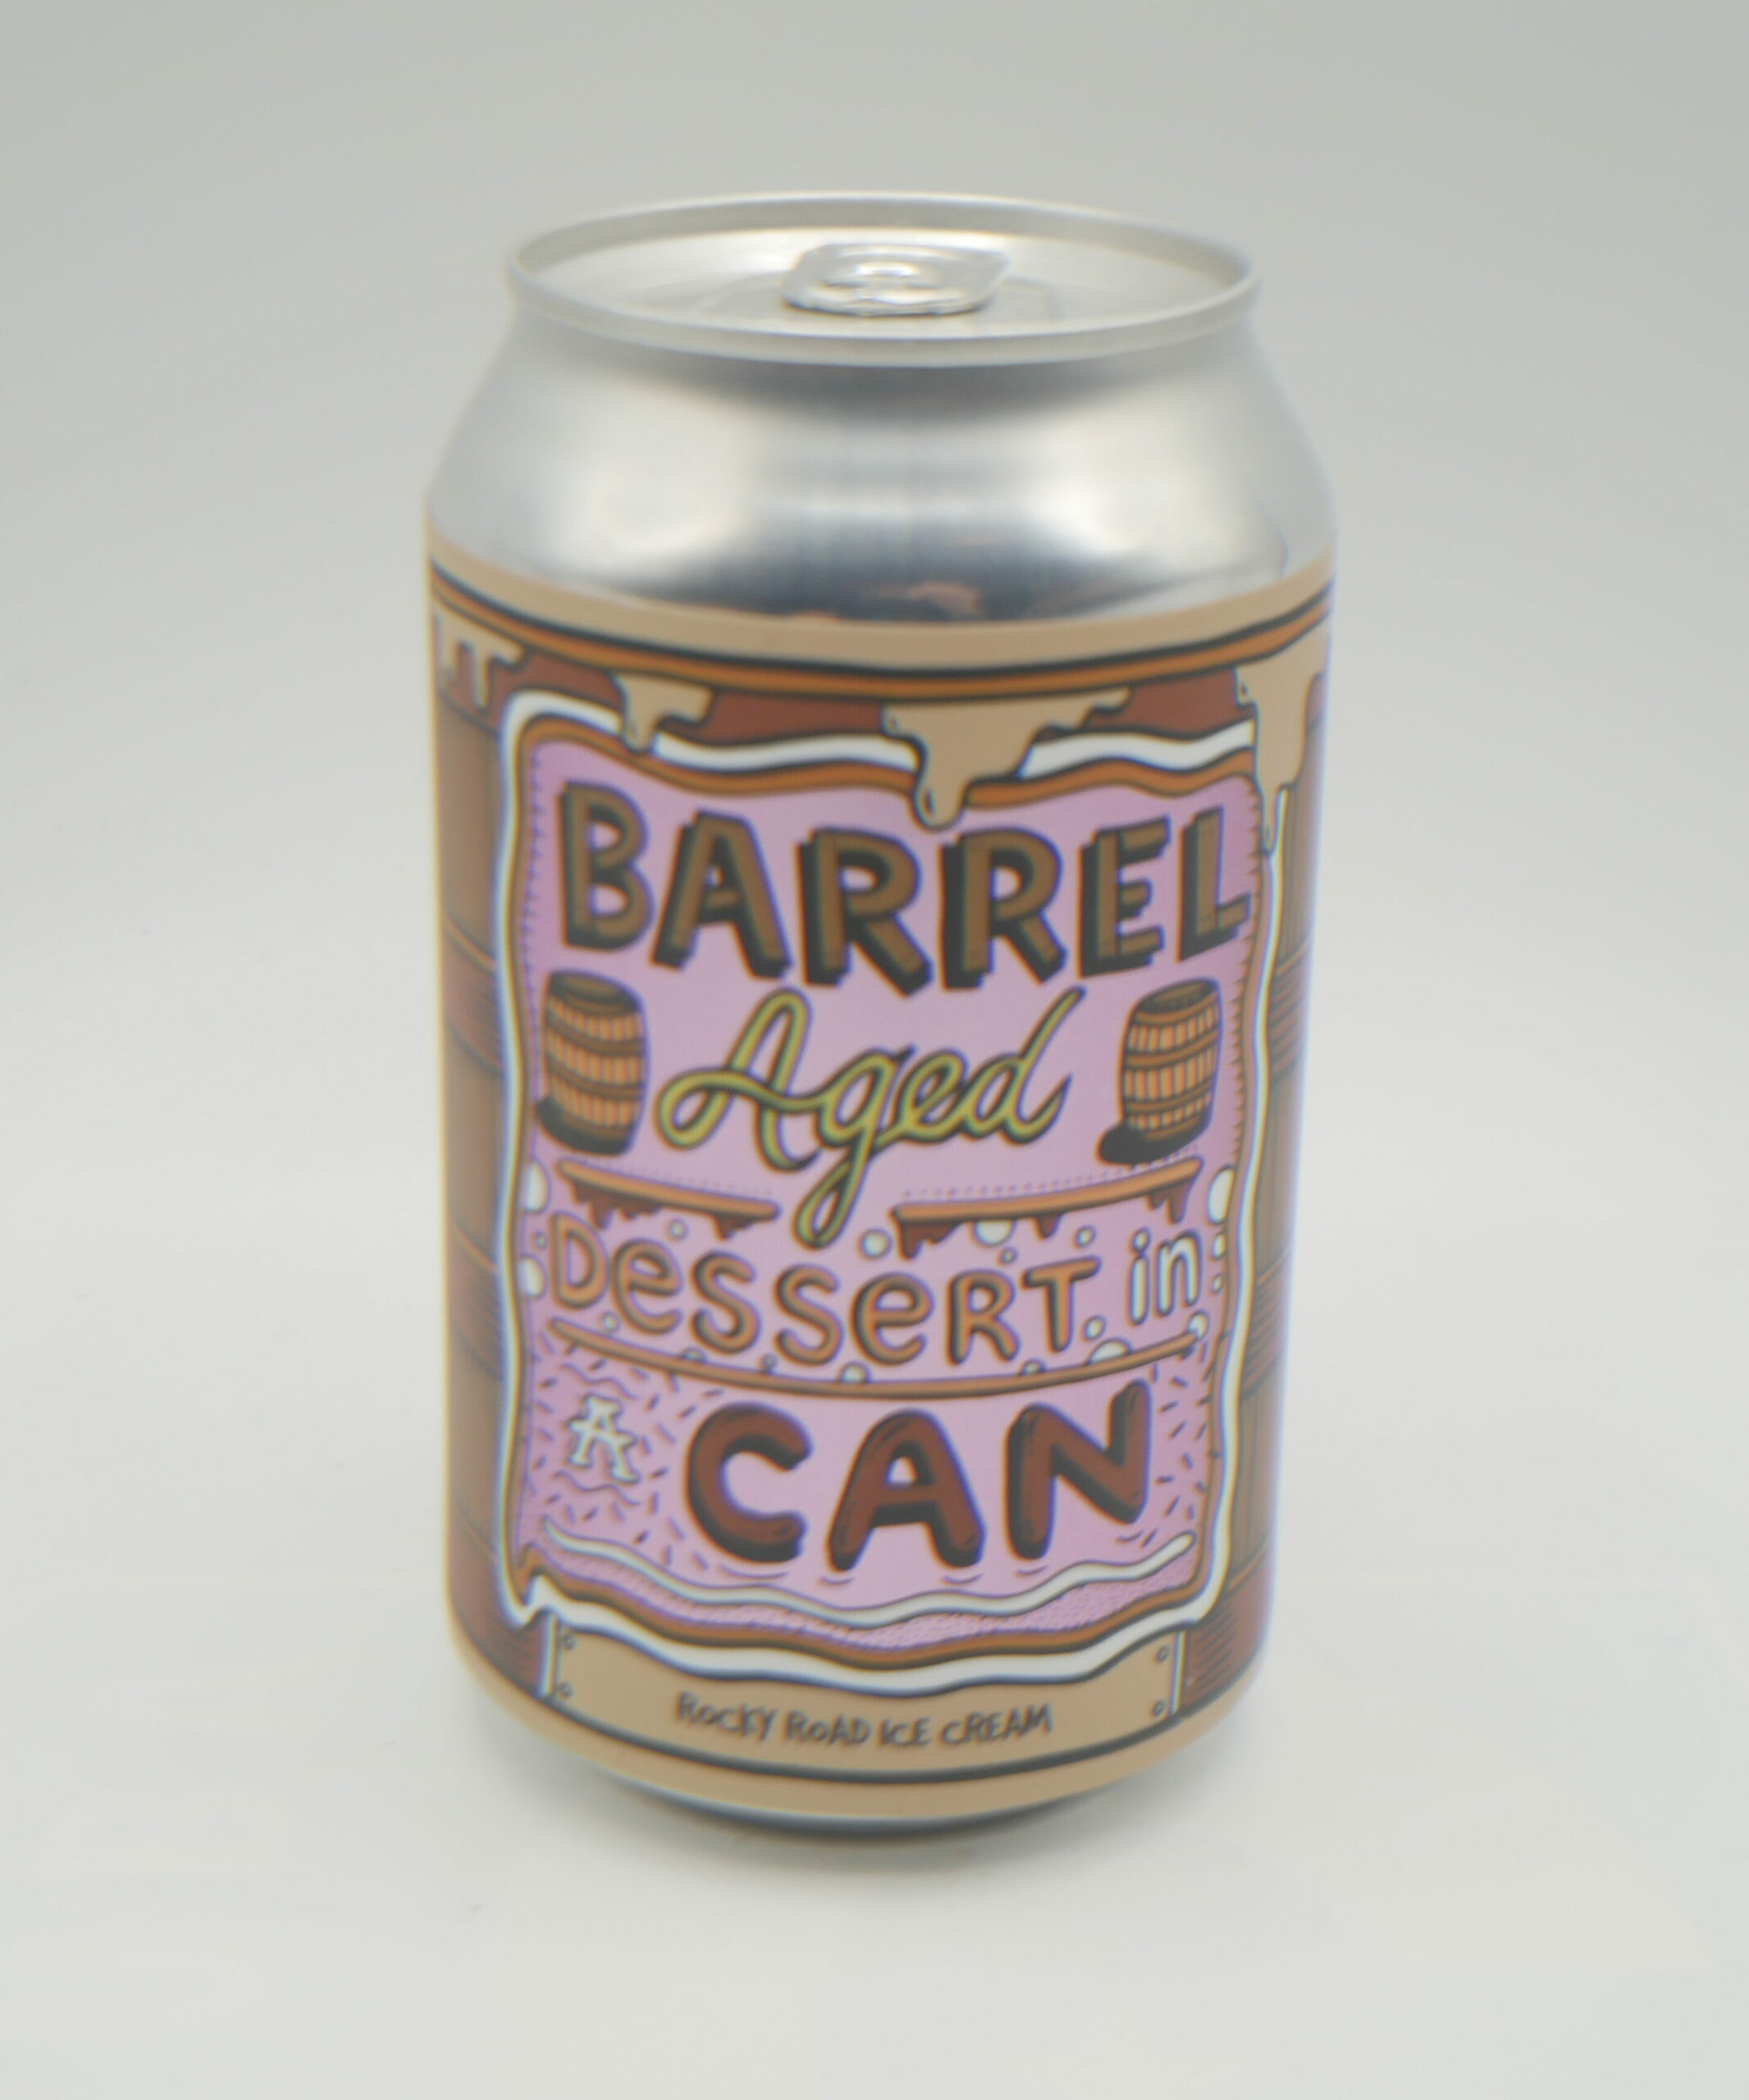 Image Barrel aged dessert in can rocky road ice cream